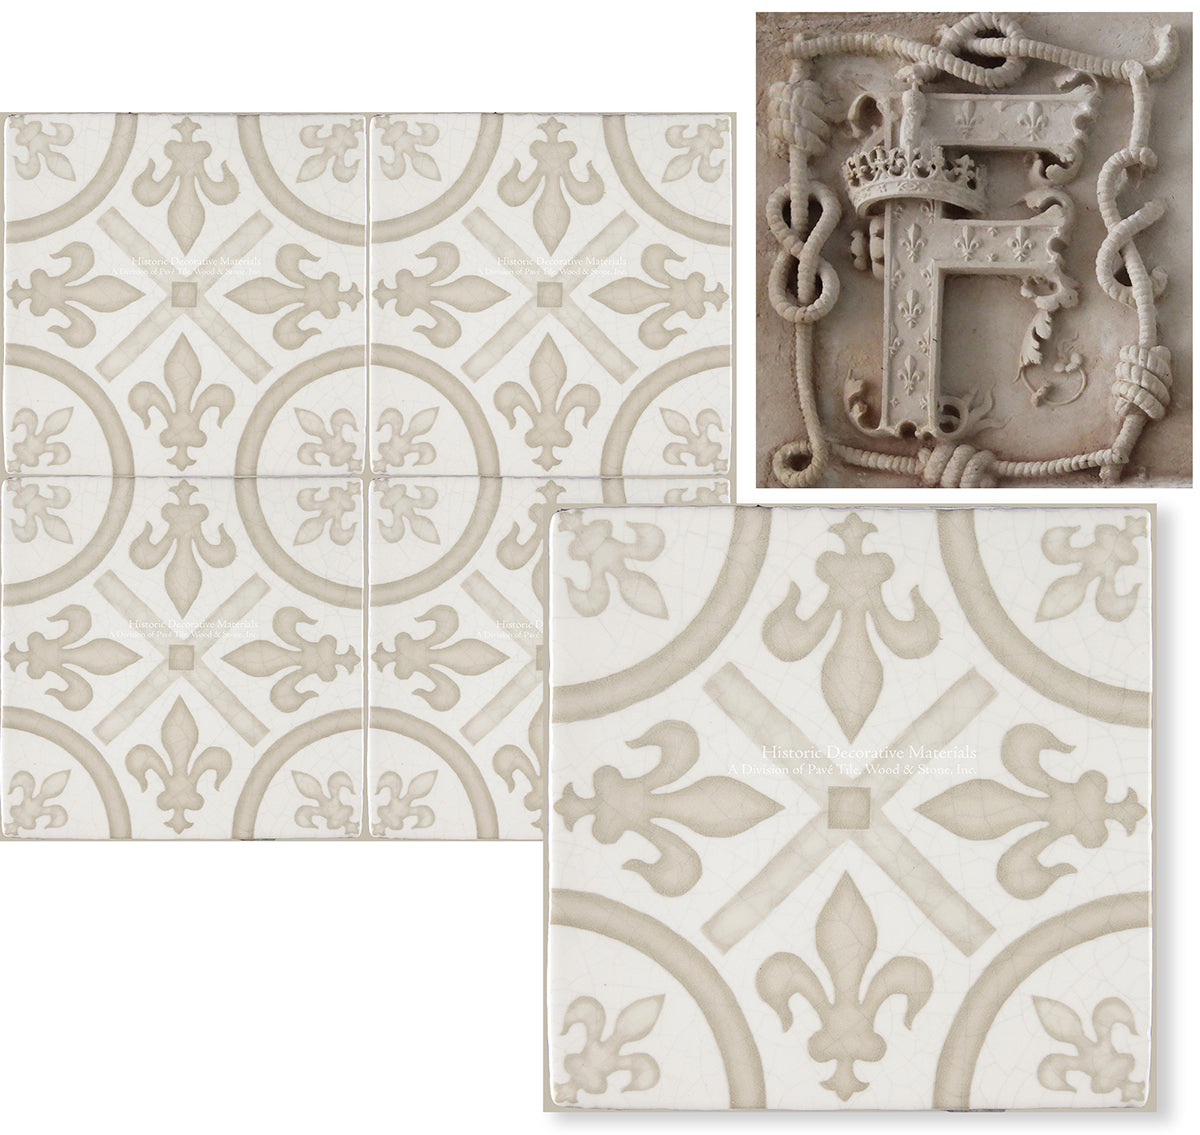 Historic Decorative Wall Tiles that are hand painted decorative wall tiles for kitchen backsplash, fireplace surround, bathroom wall tiles that interior designers choose for old world, farmhouse and luxury interiors